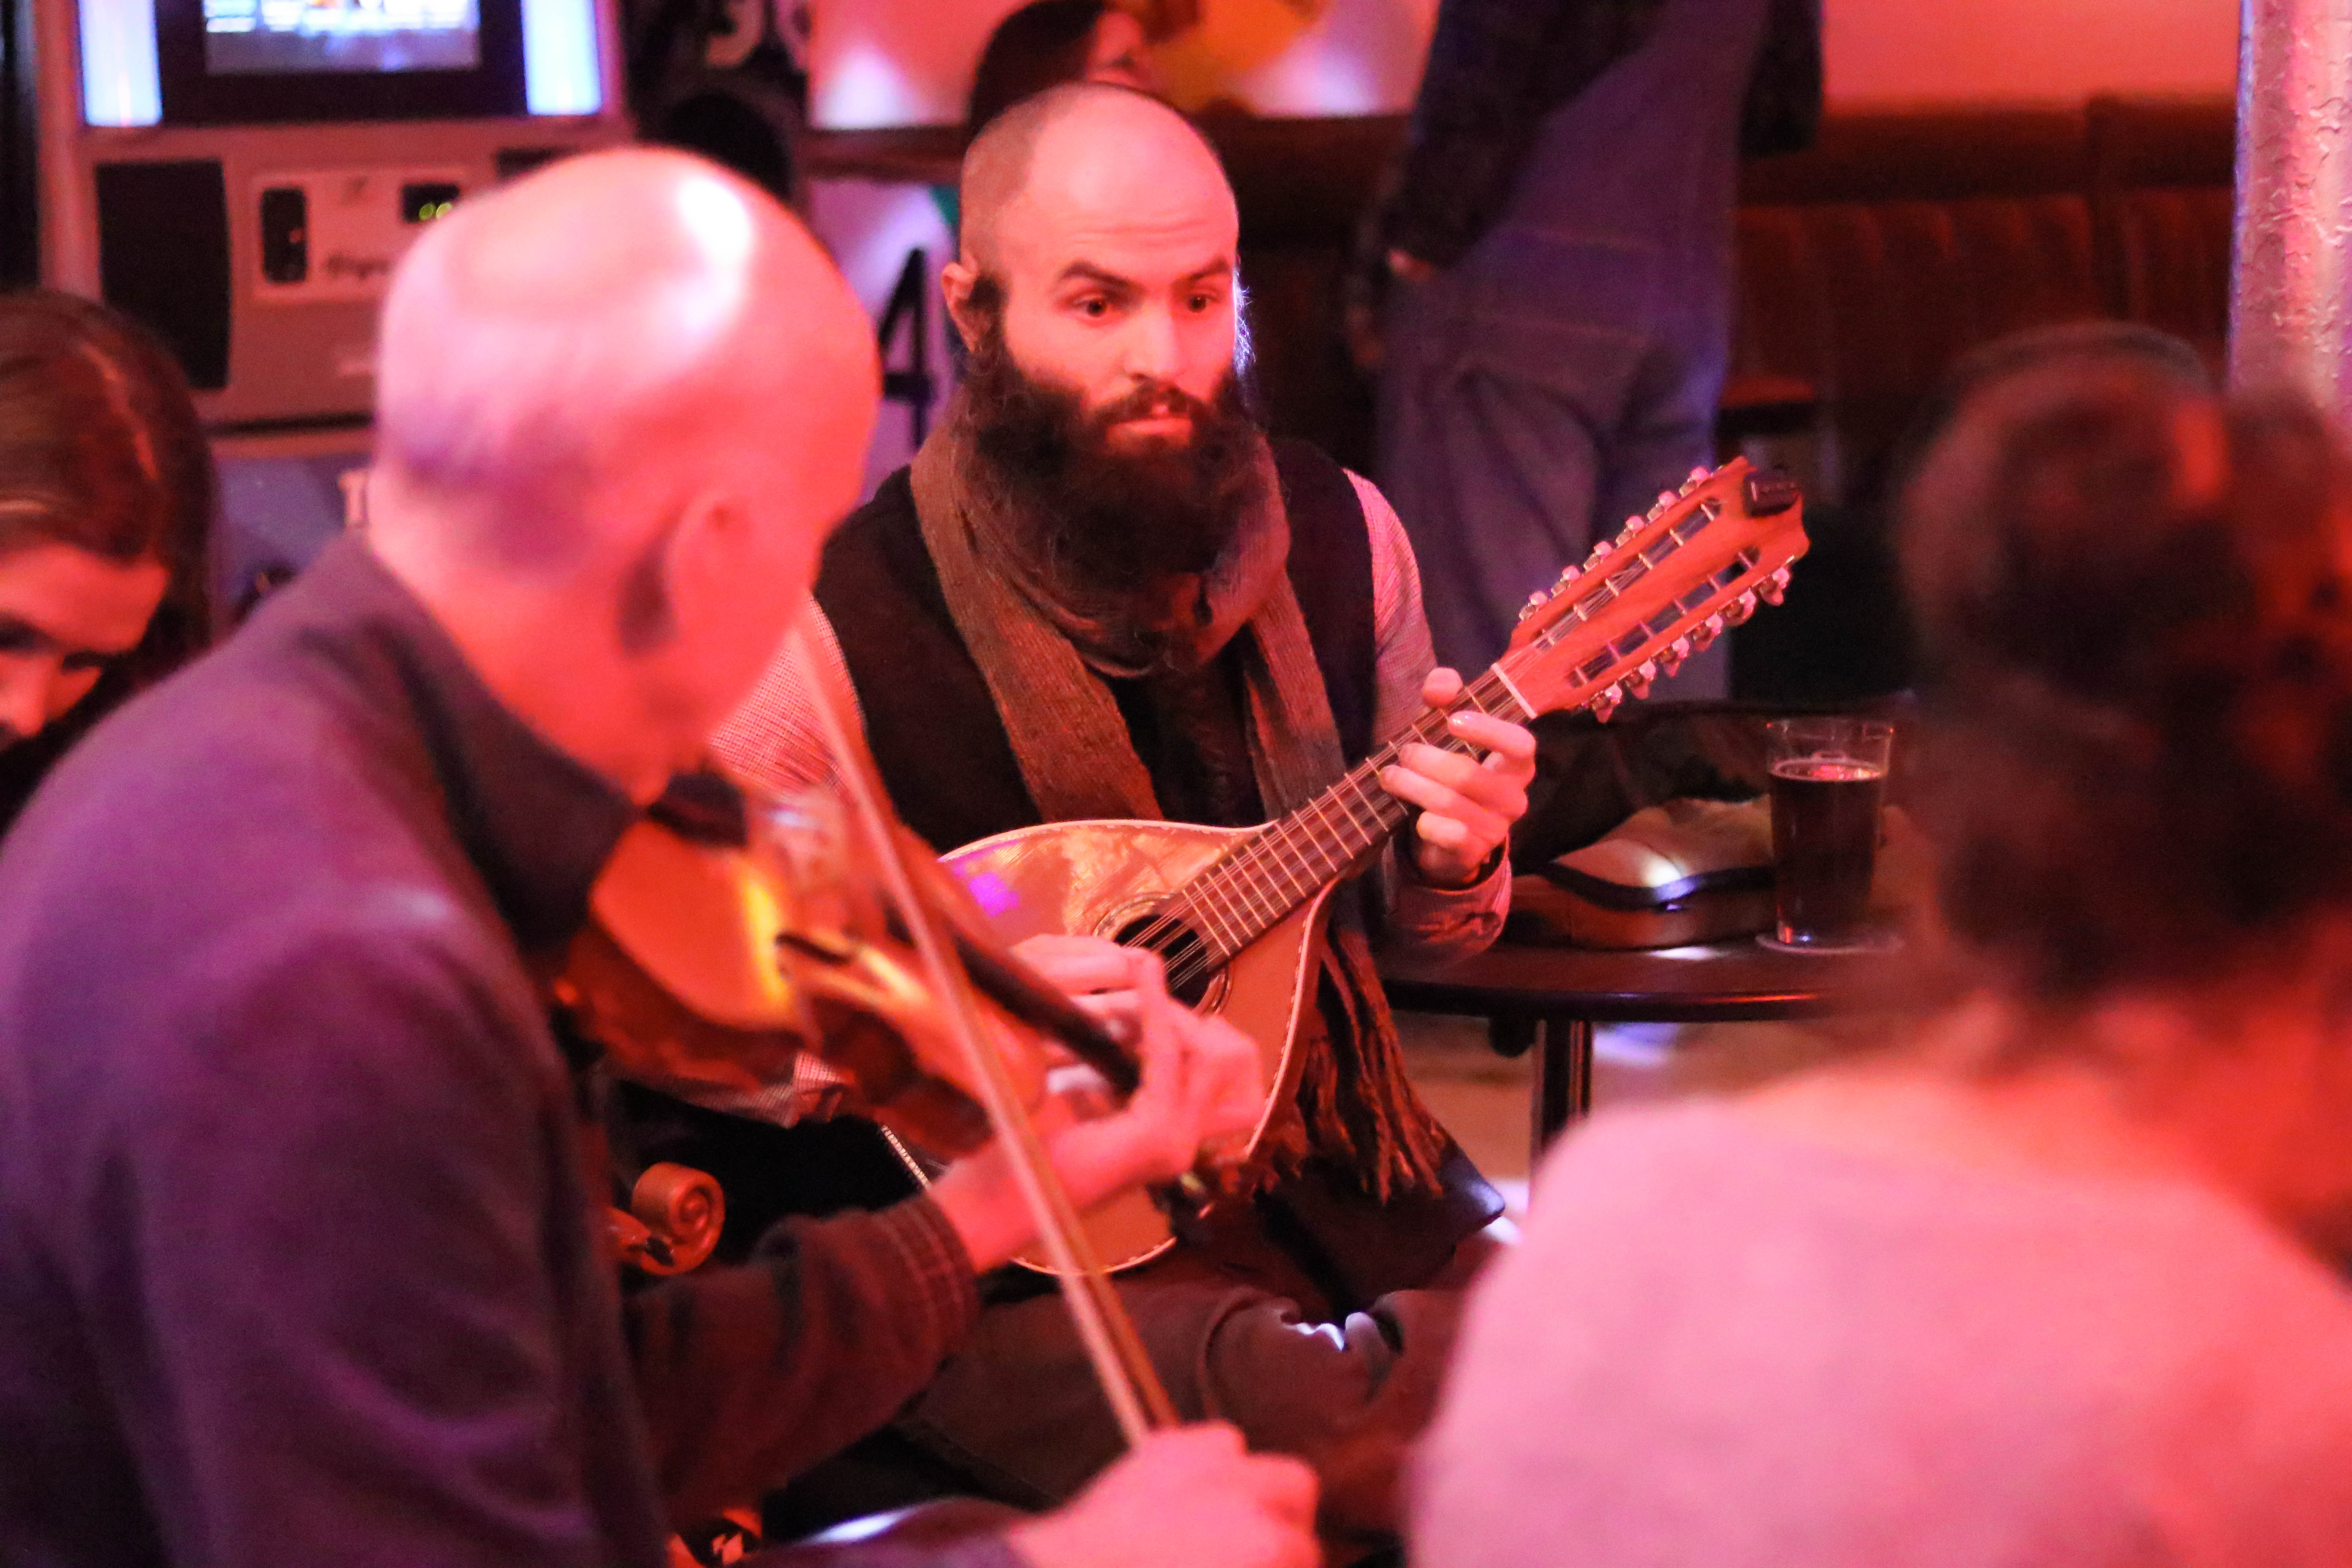 Photos: Traditional Irish Session at The Hot Mess 1 10 19